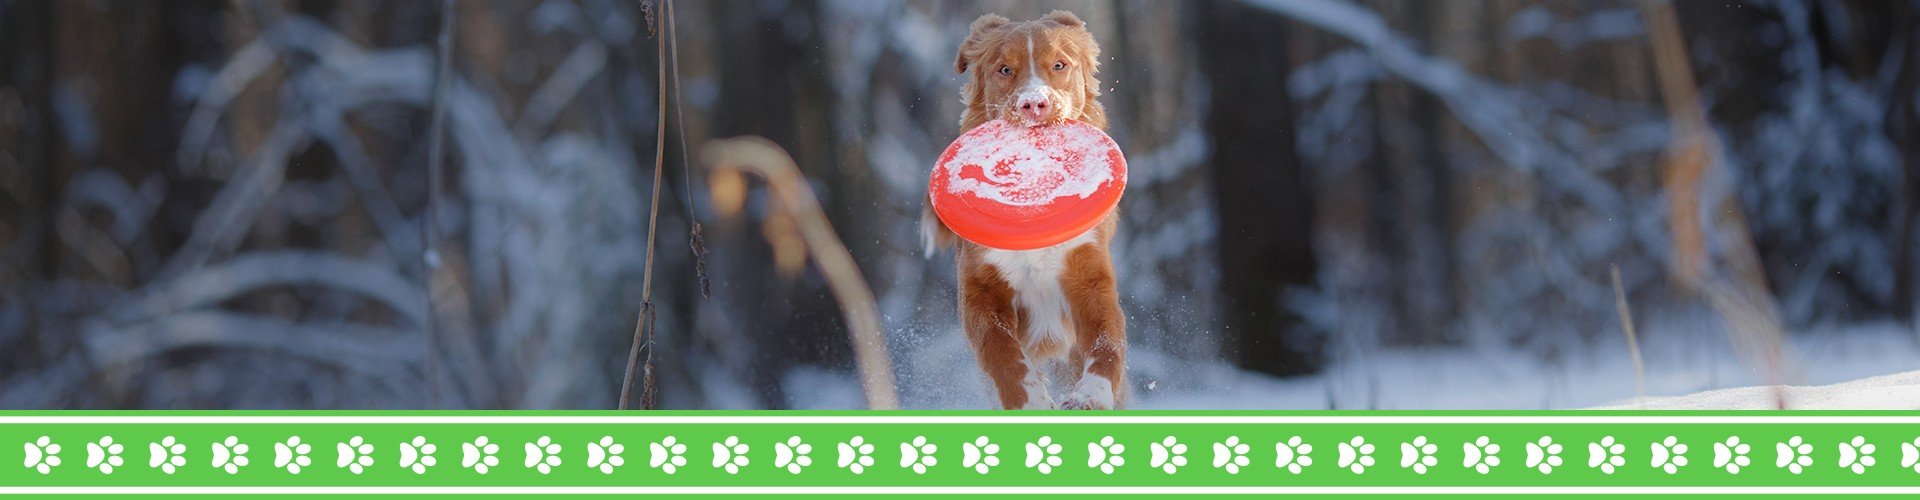 Playing frisbee with a dog in winter.